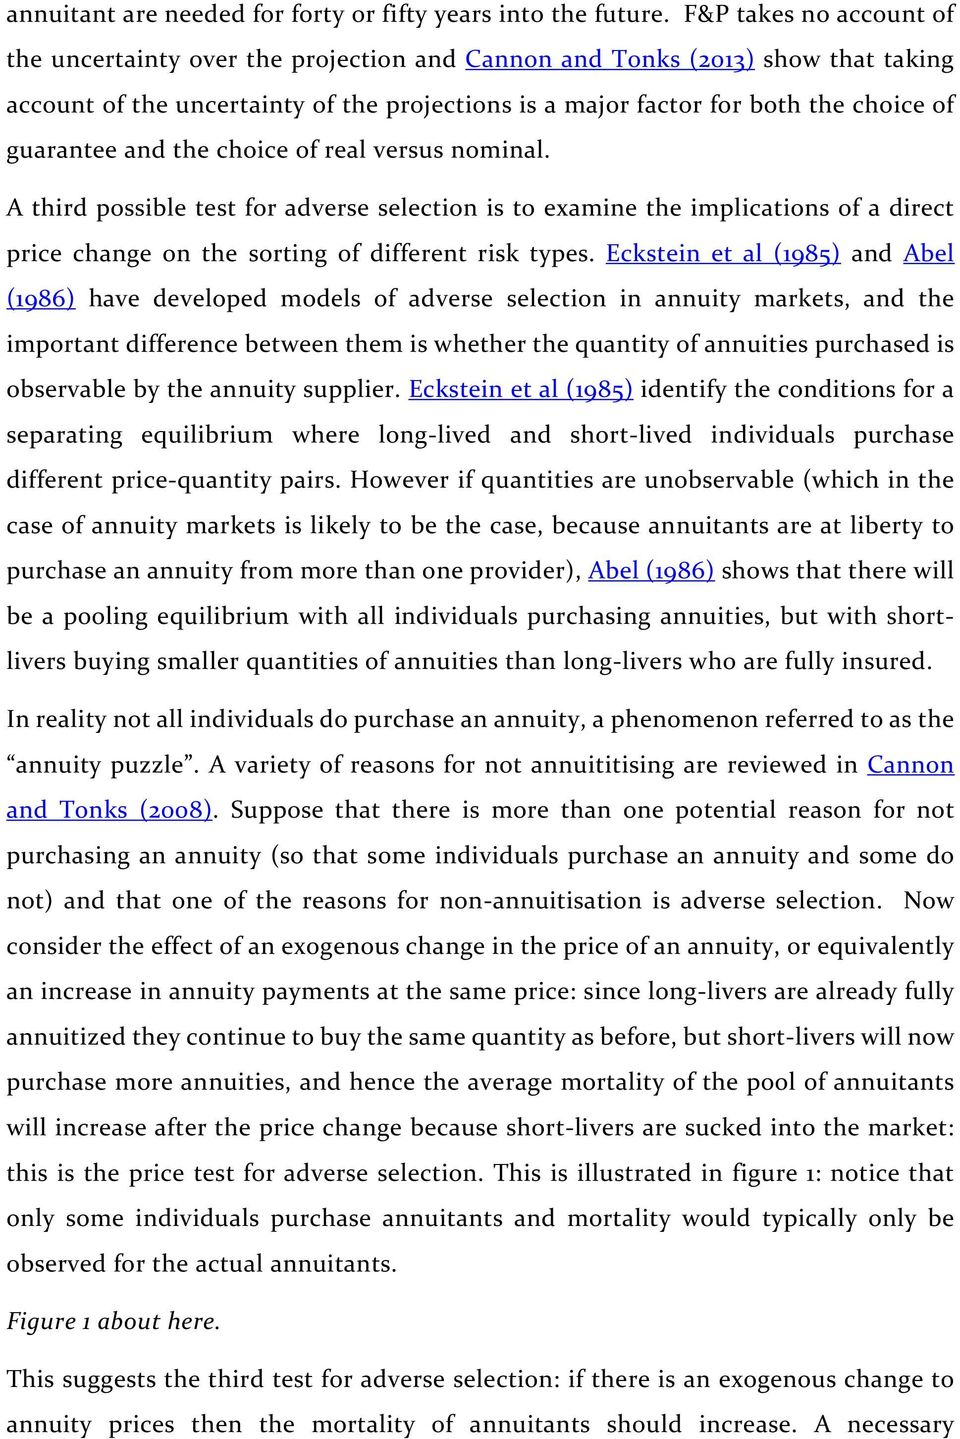 guarantee and the choice of real versus nominal. A third possible test for adverse selection is to examine the implications of a direct price change on the sorting of different risk types.